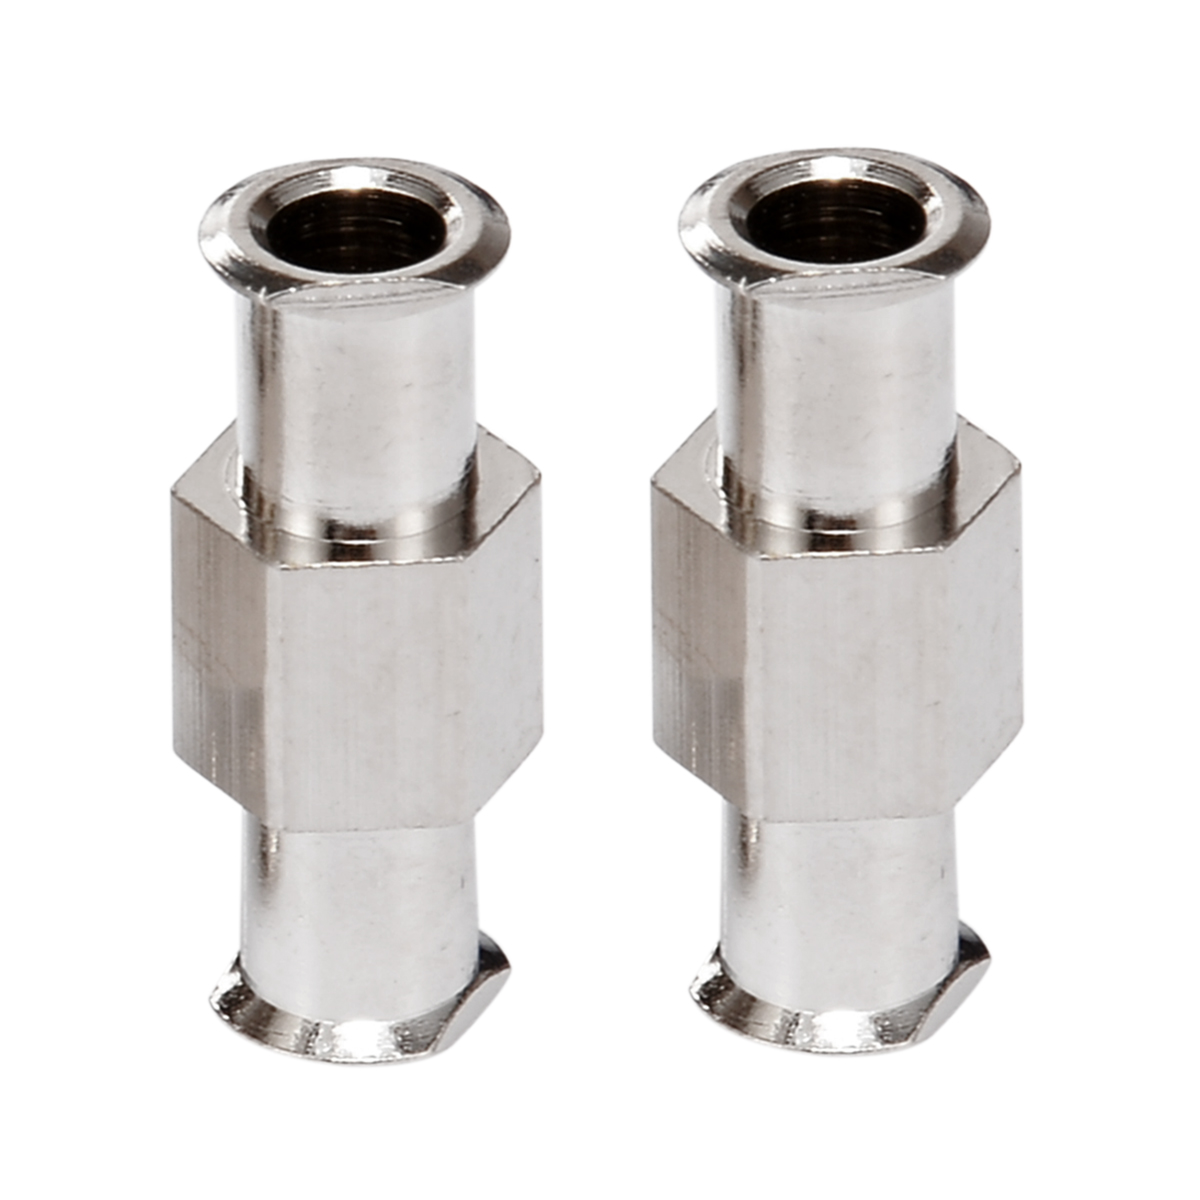 2pcs Luer Lock Adapter Coupler Nickel Plated Brass L-9Z Luer Lock Fitting Female to Female Fittings Connector with 4mm Aperture